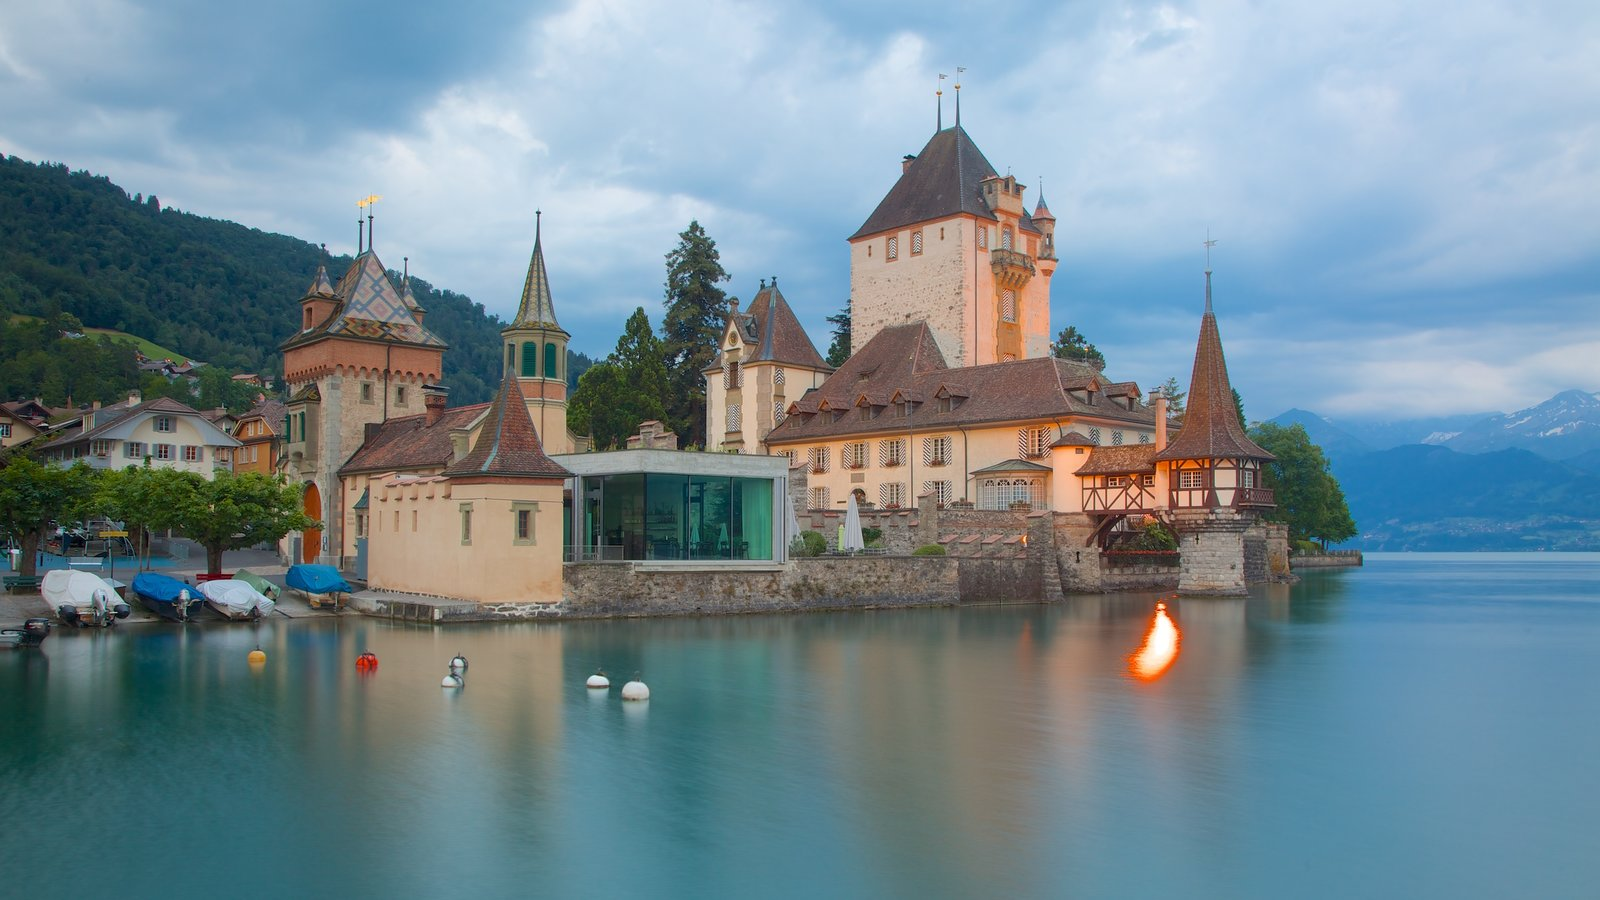 Interlaken showing a lake or waterhole, château or palace and heritage architecture